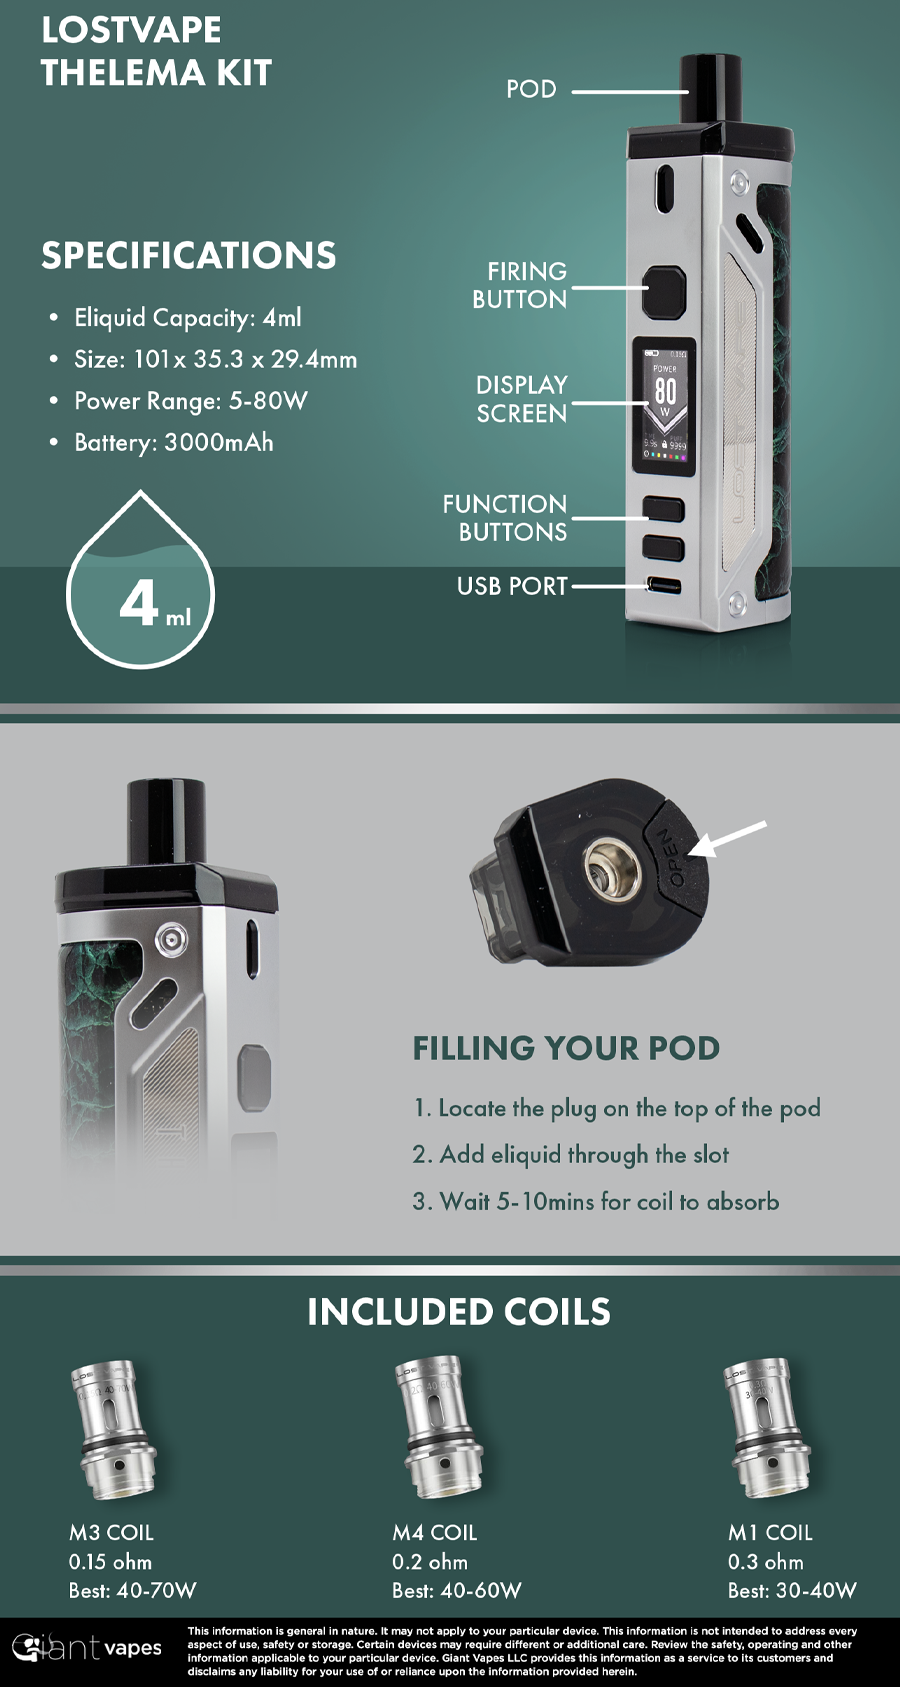 Lost Vape Thelema Kit Infographic